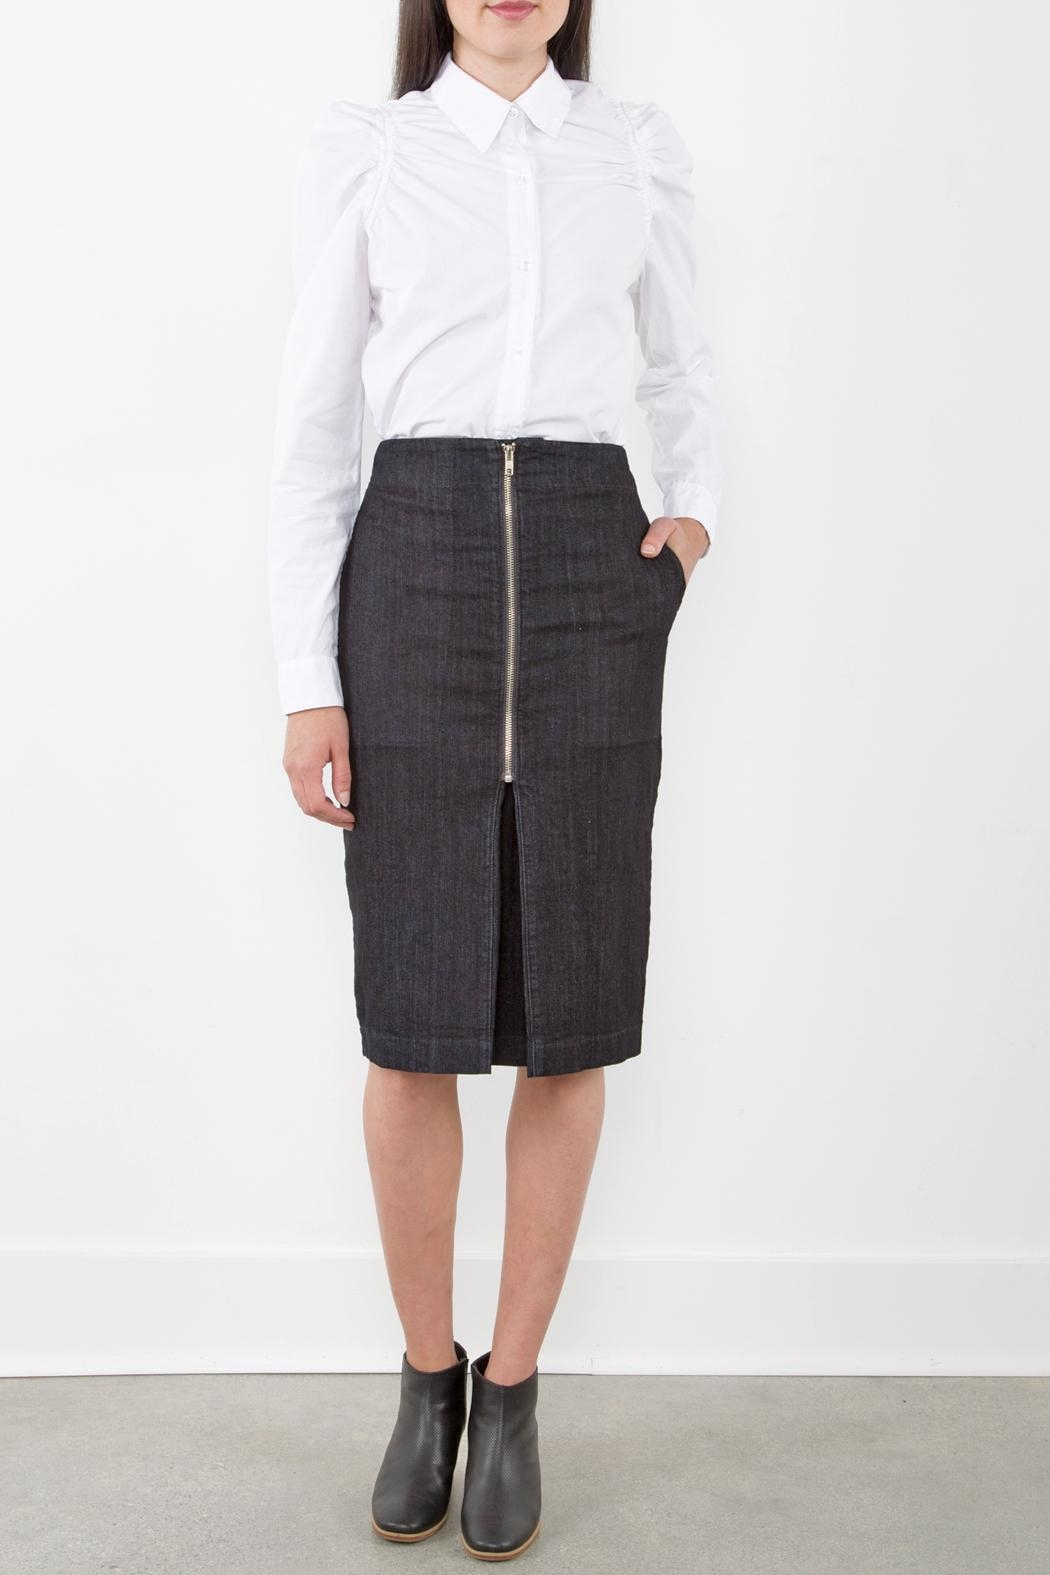 Prairie Underground Zip Pleat Skirt - Main Image